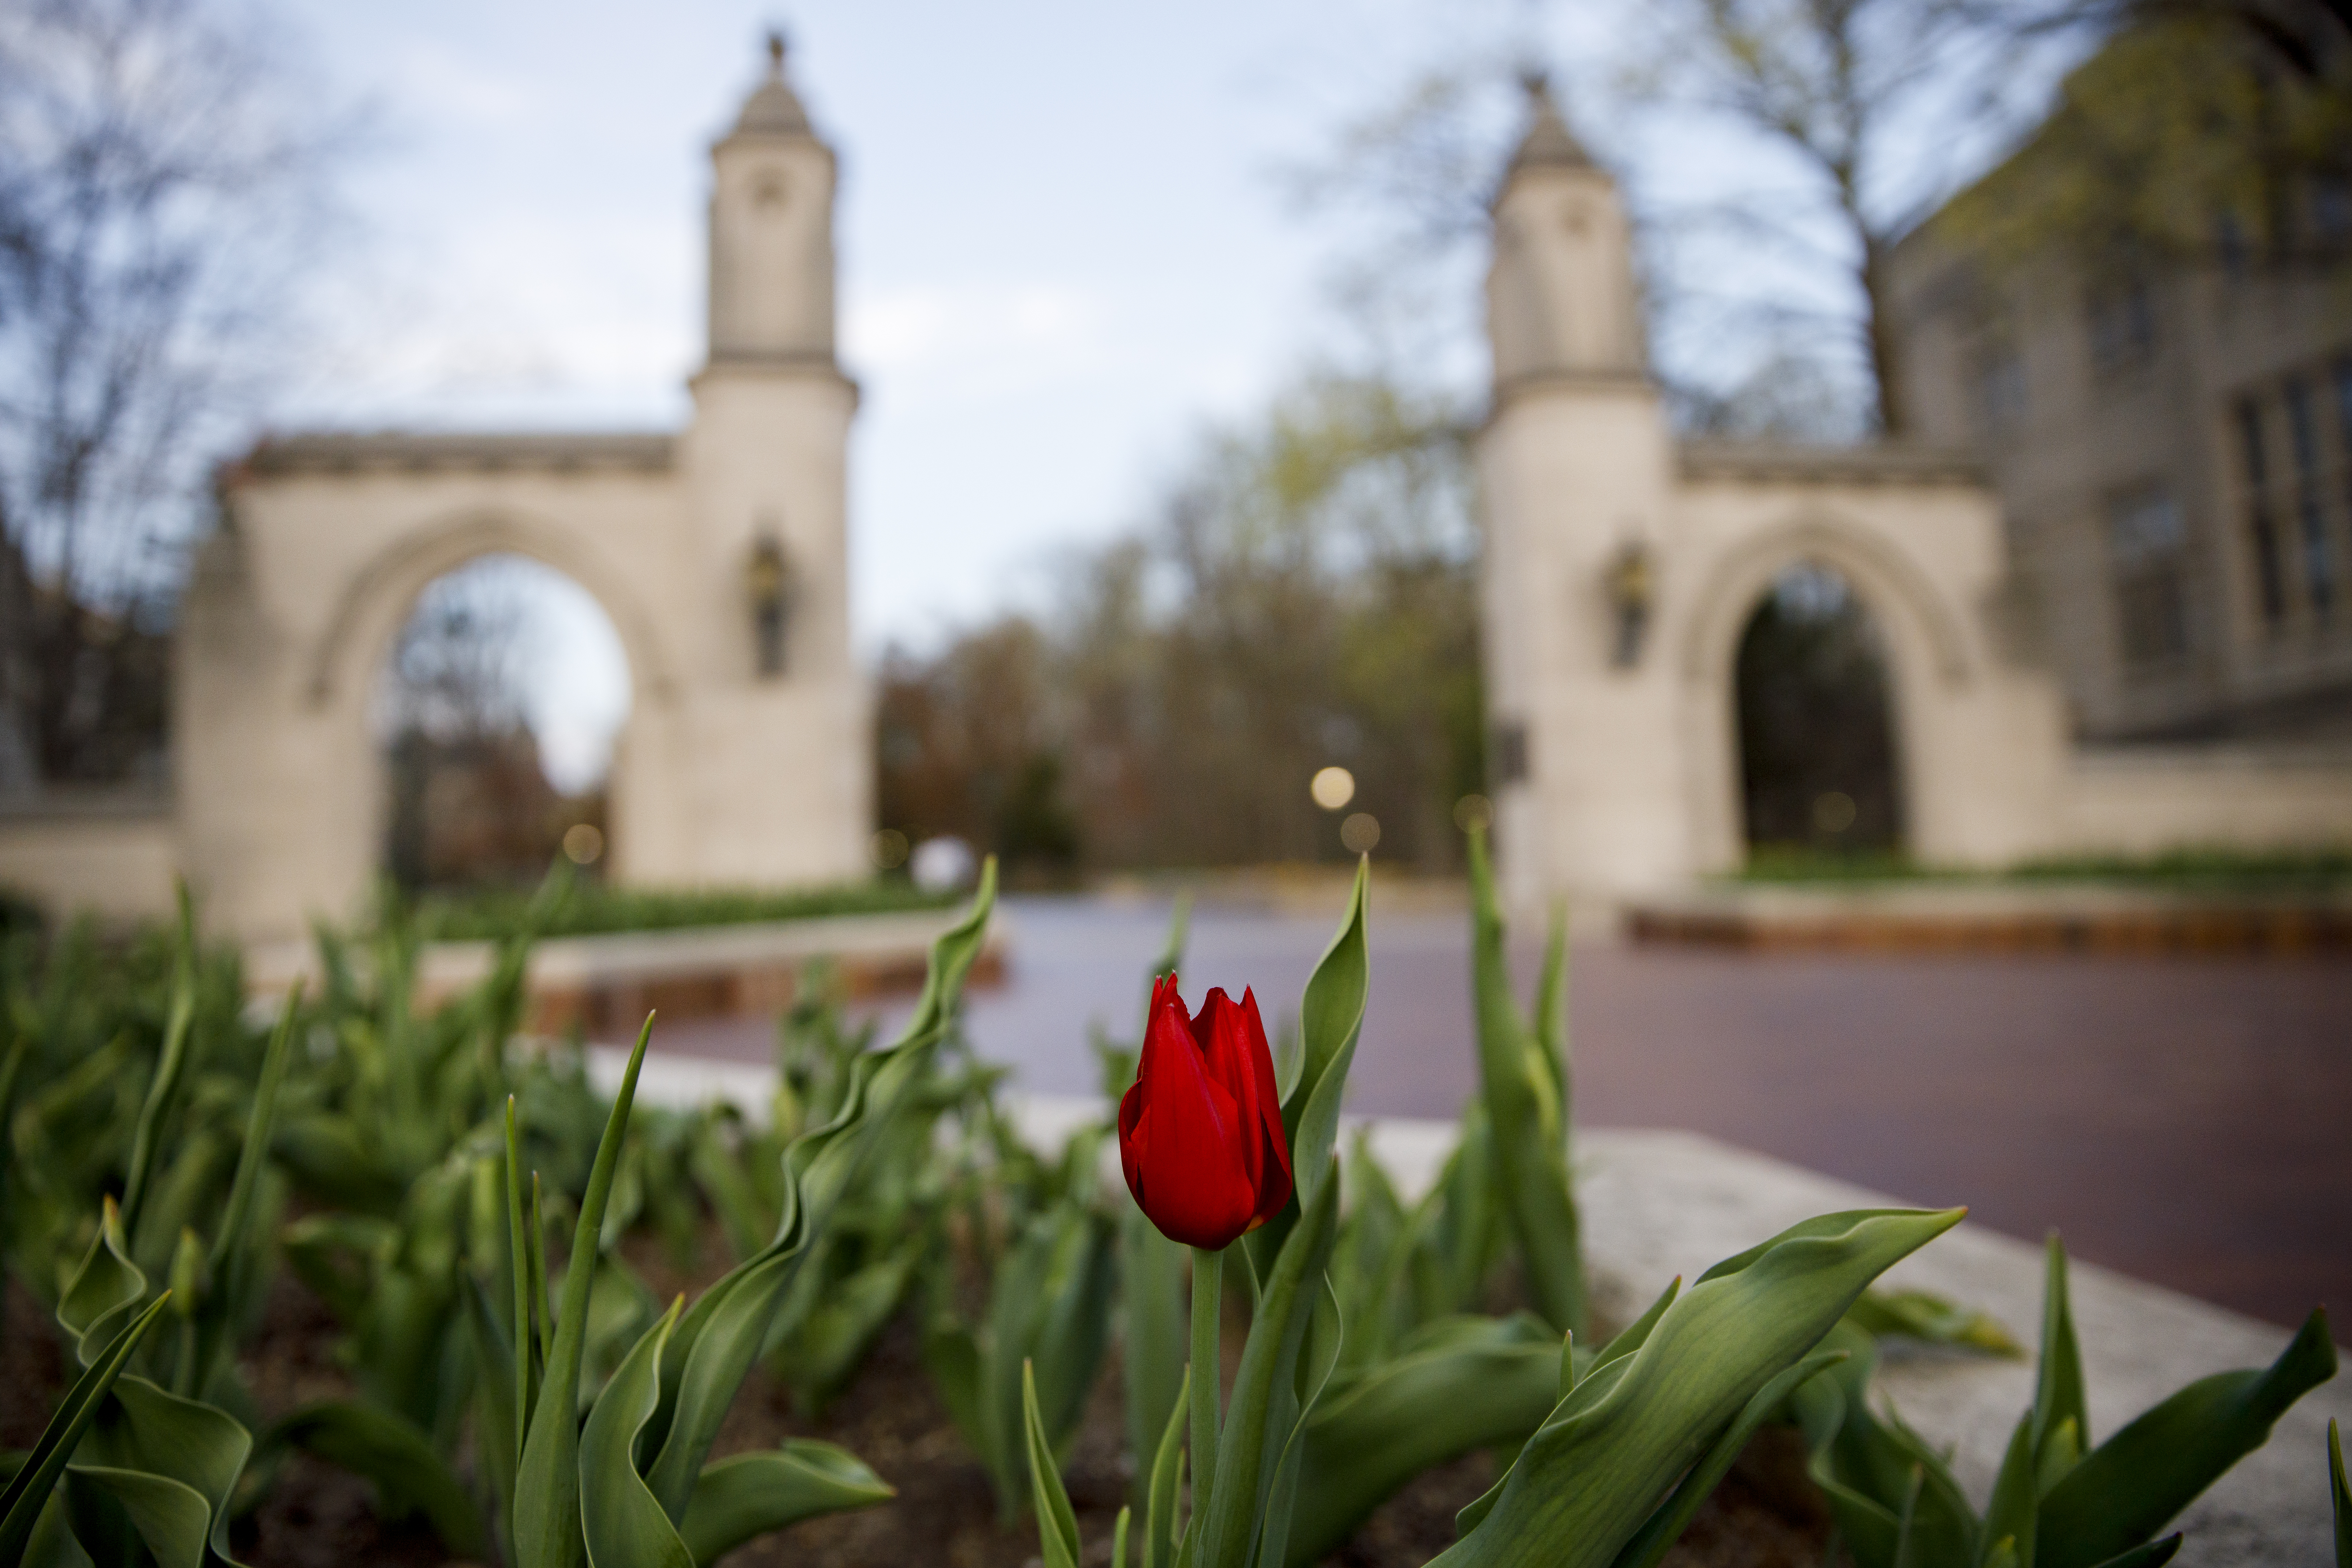 A red tulip in the foreground is in focus, while in the background is IU's sample gates